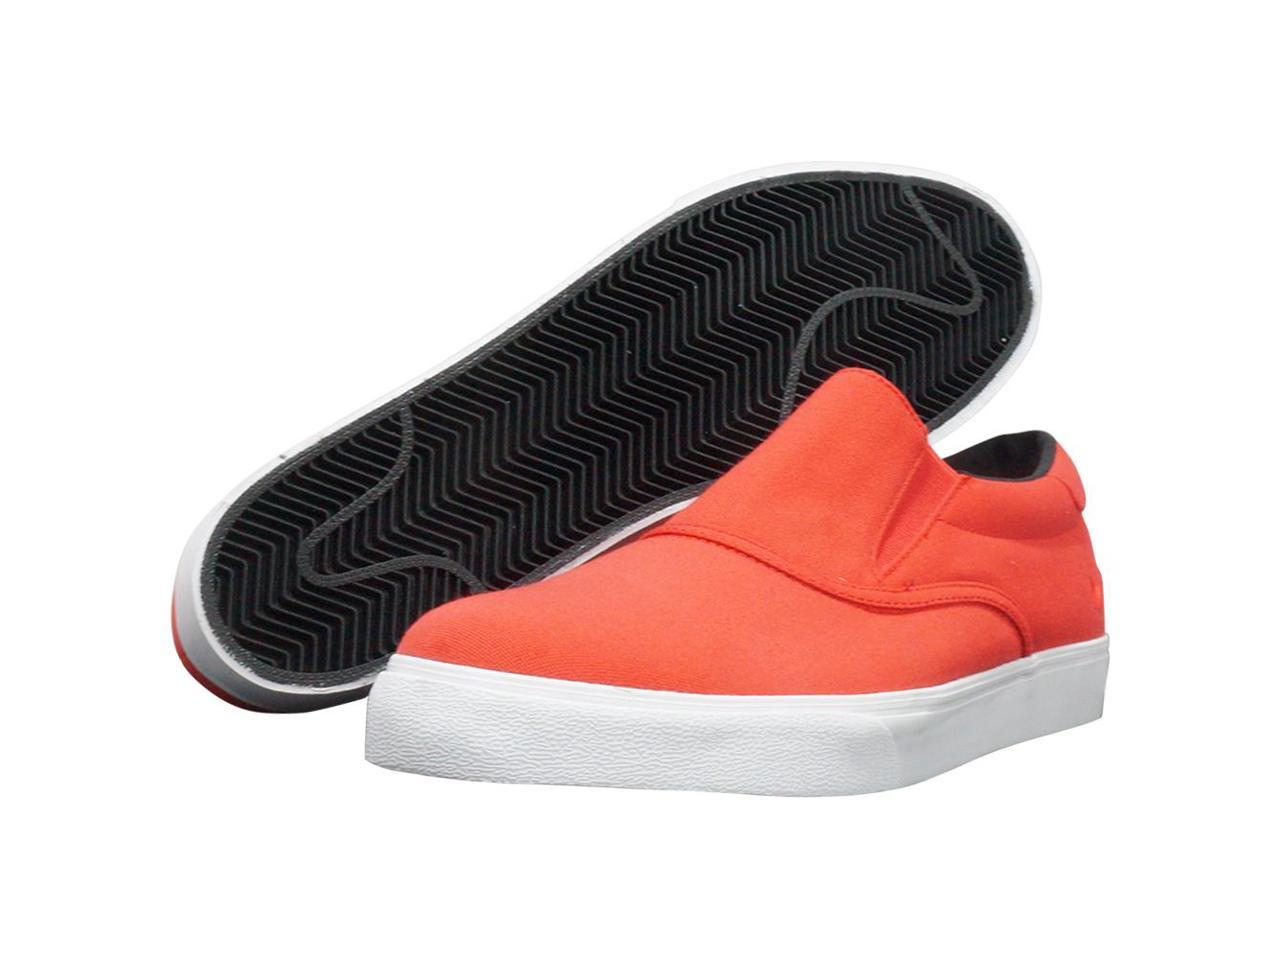 Nike SB VRONA Slip On Sneaker Skating 10 Shoe - 580432-601 Size 10 Skating 36226e